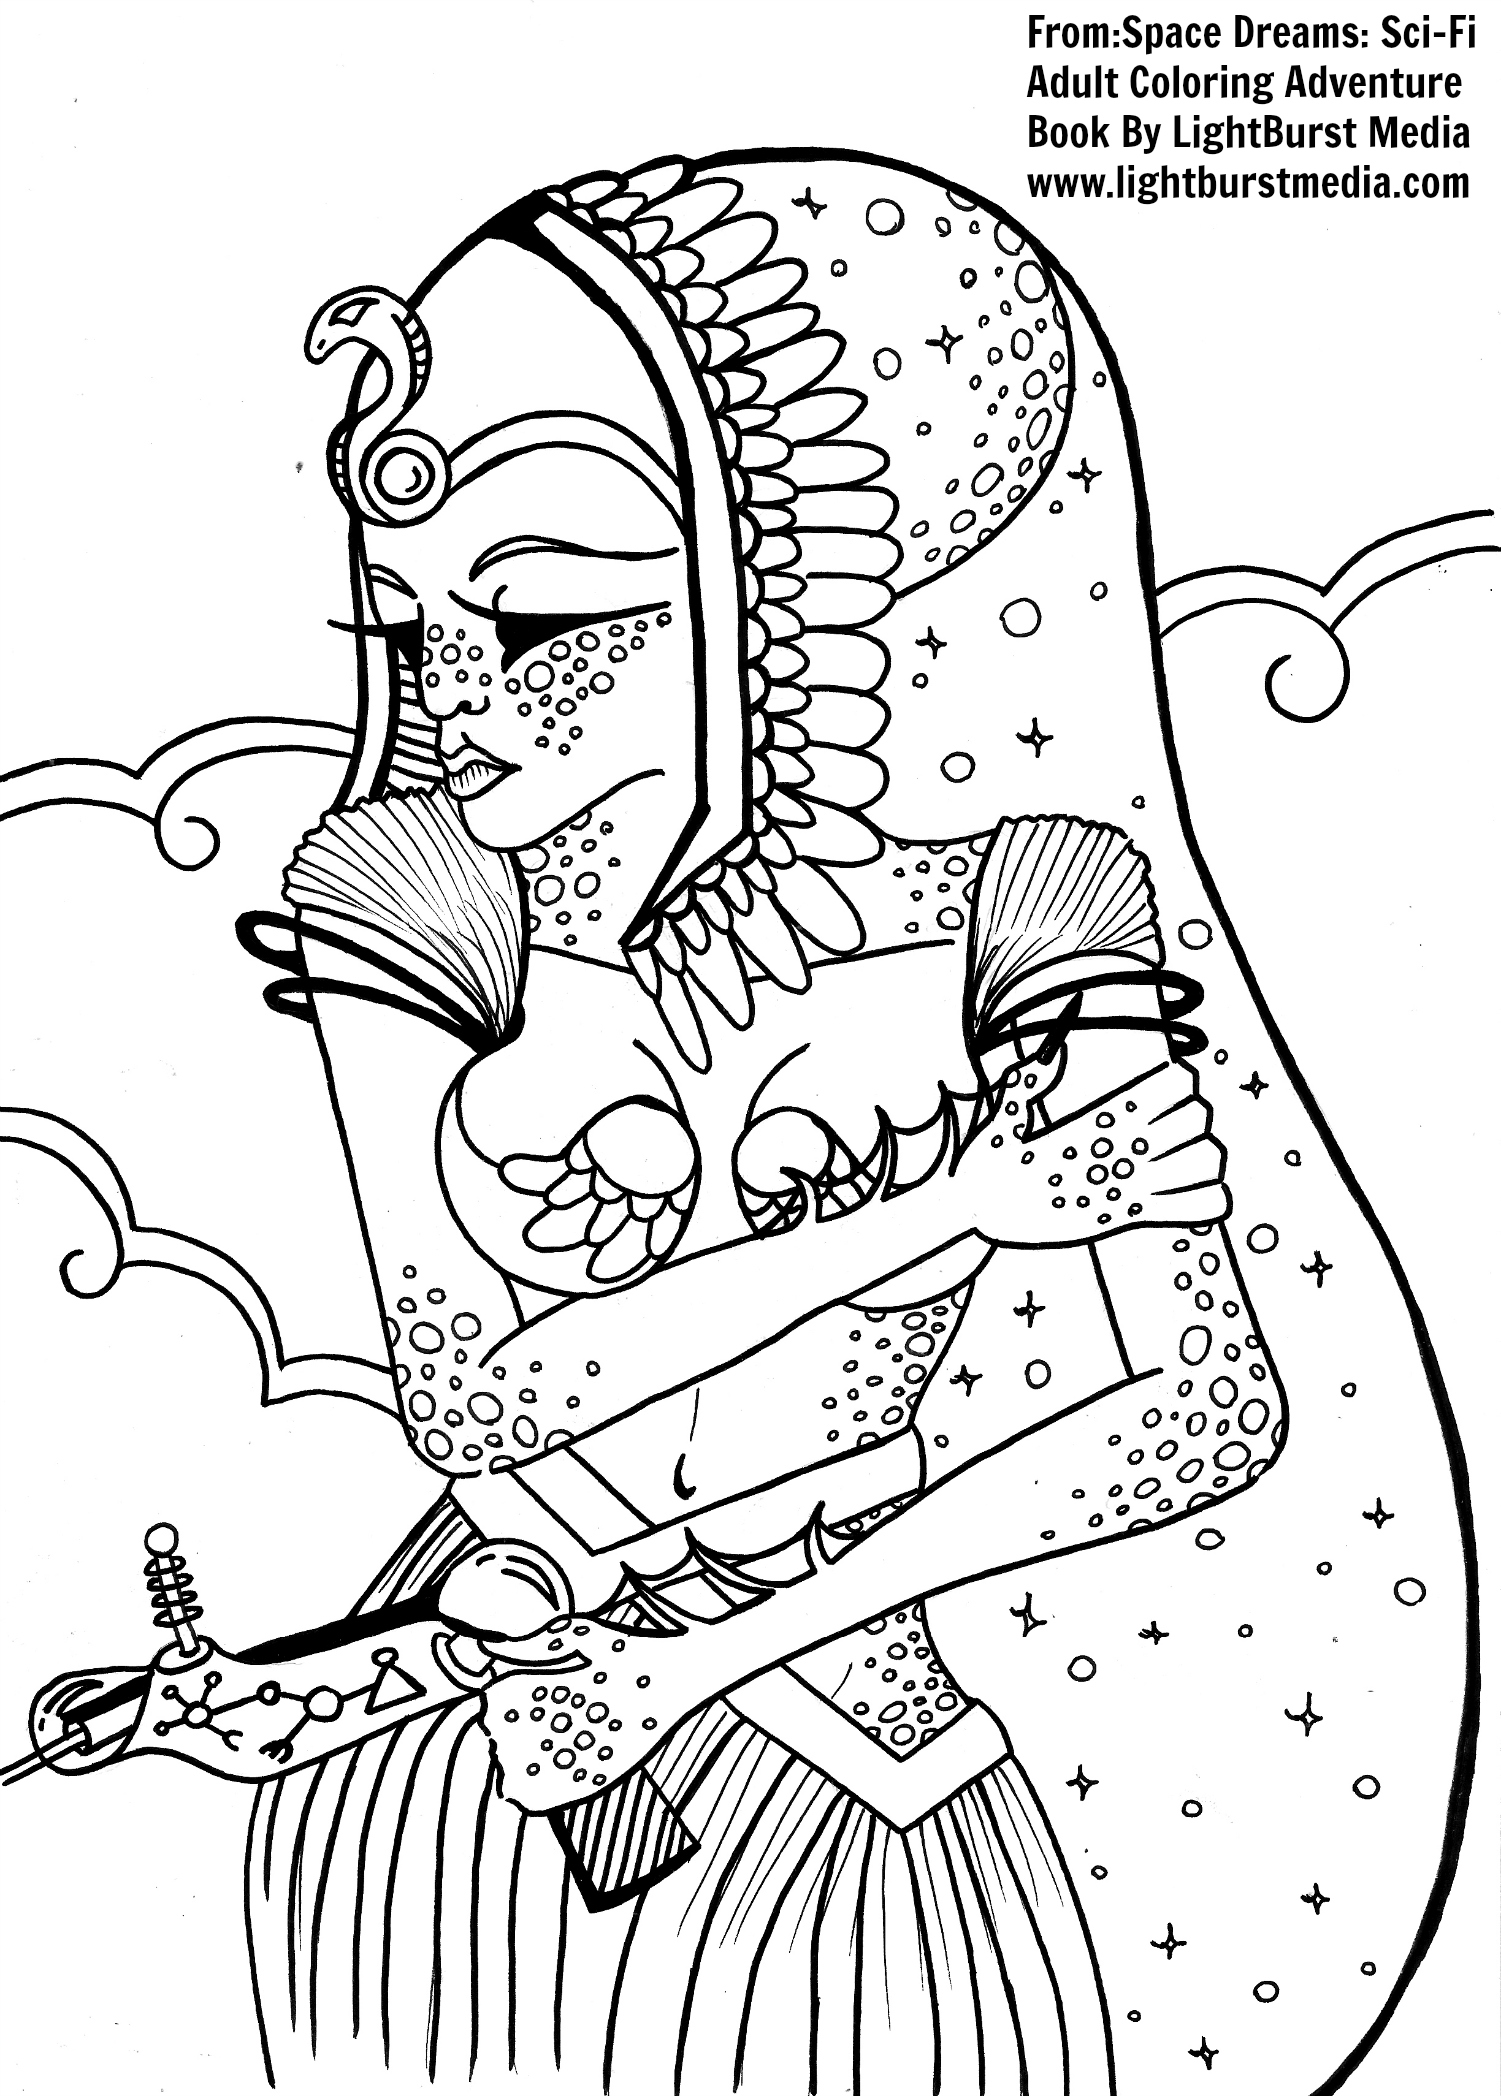 coloring pages online for adults free coloring pages adult coloring worldwide online pages for adults coloring